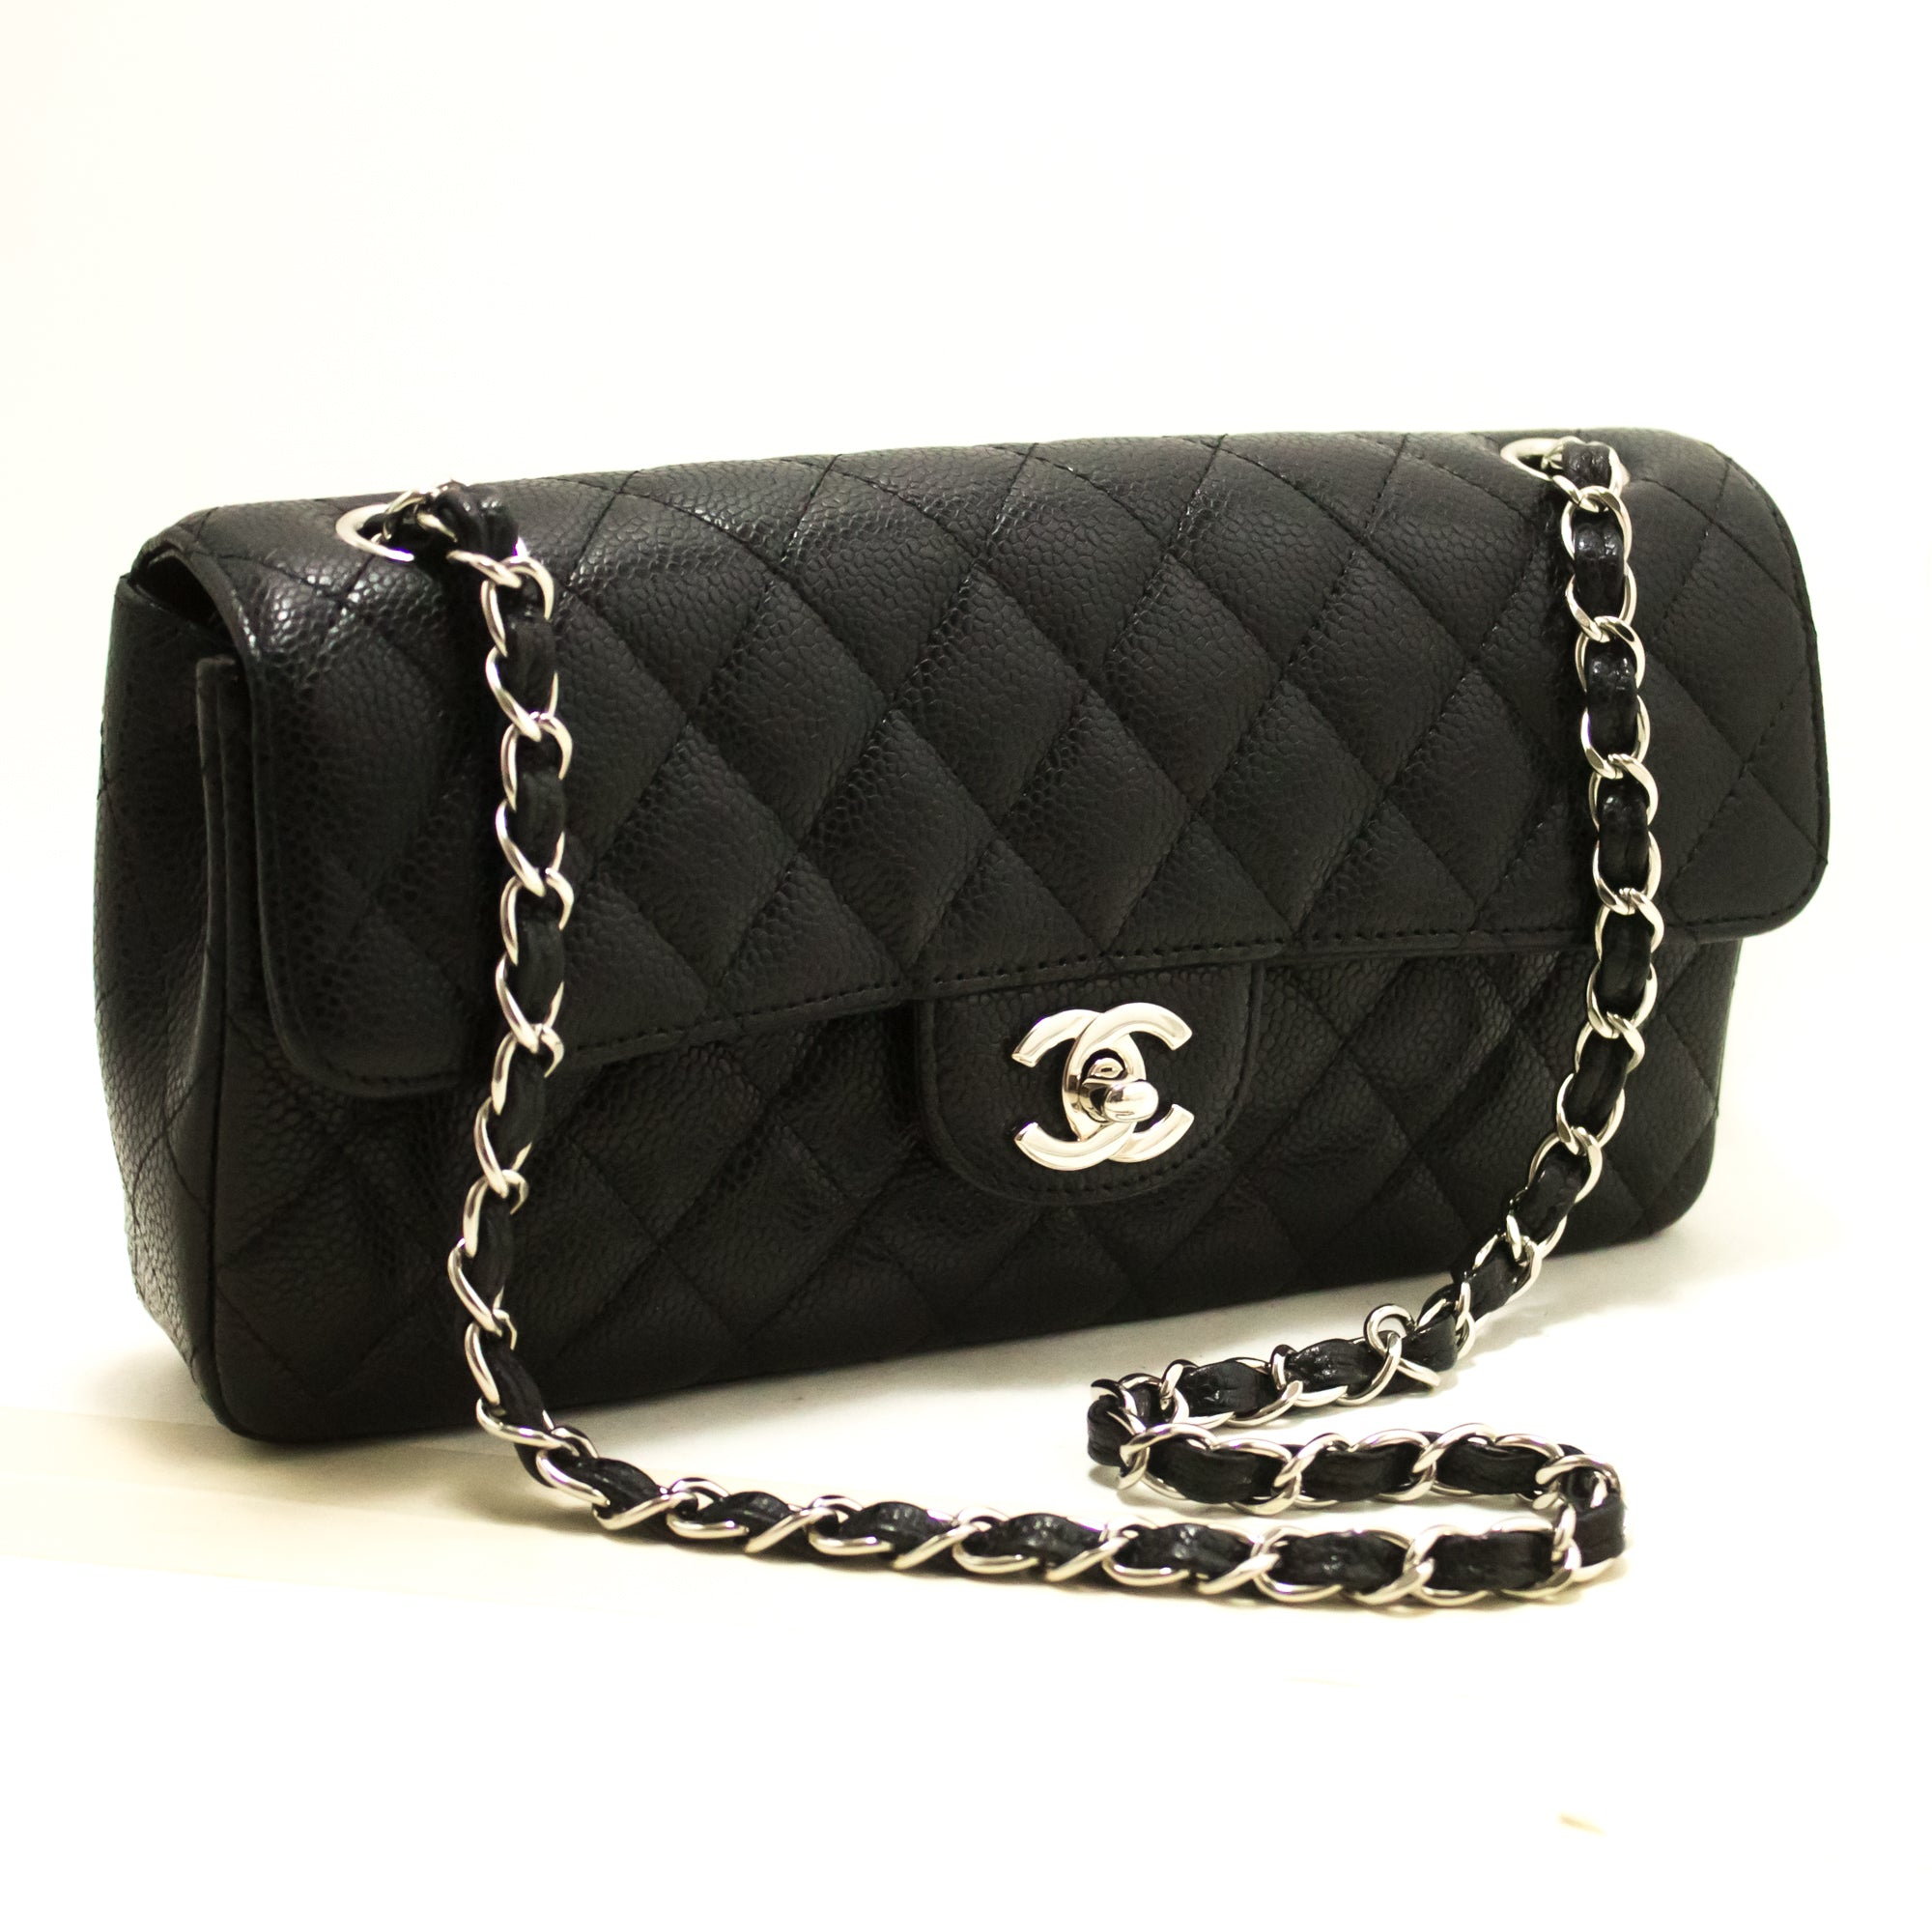 516a05a49cad58 ... CHANEL Caviar Chain Shoulder Bag Black Quilted Single Flap Leather  R67-Shoulder Bag-hannari ...